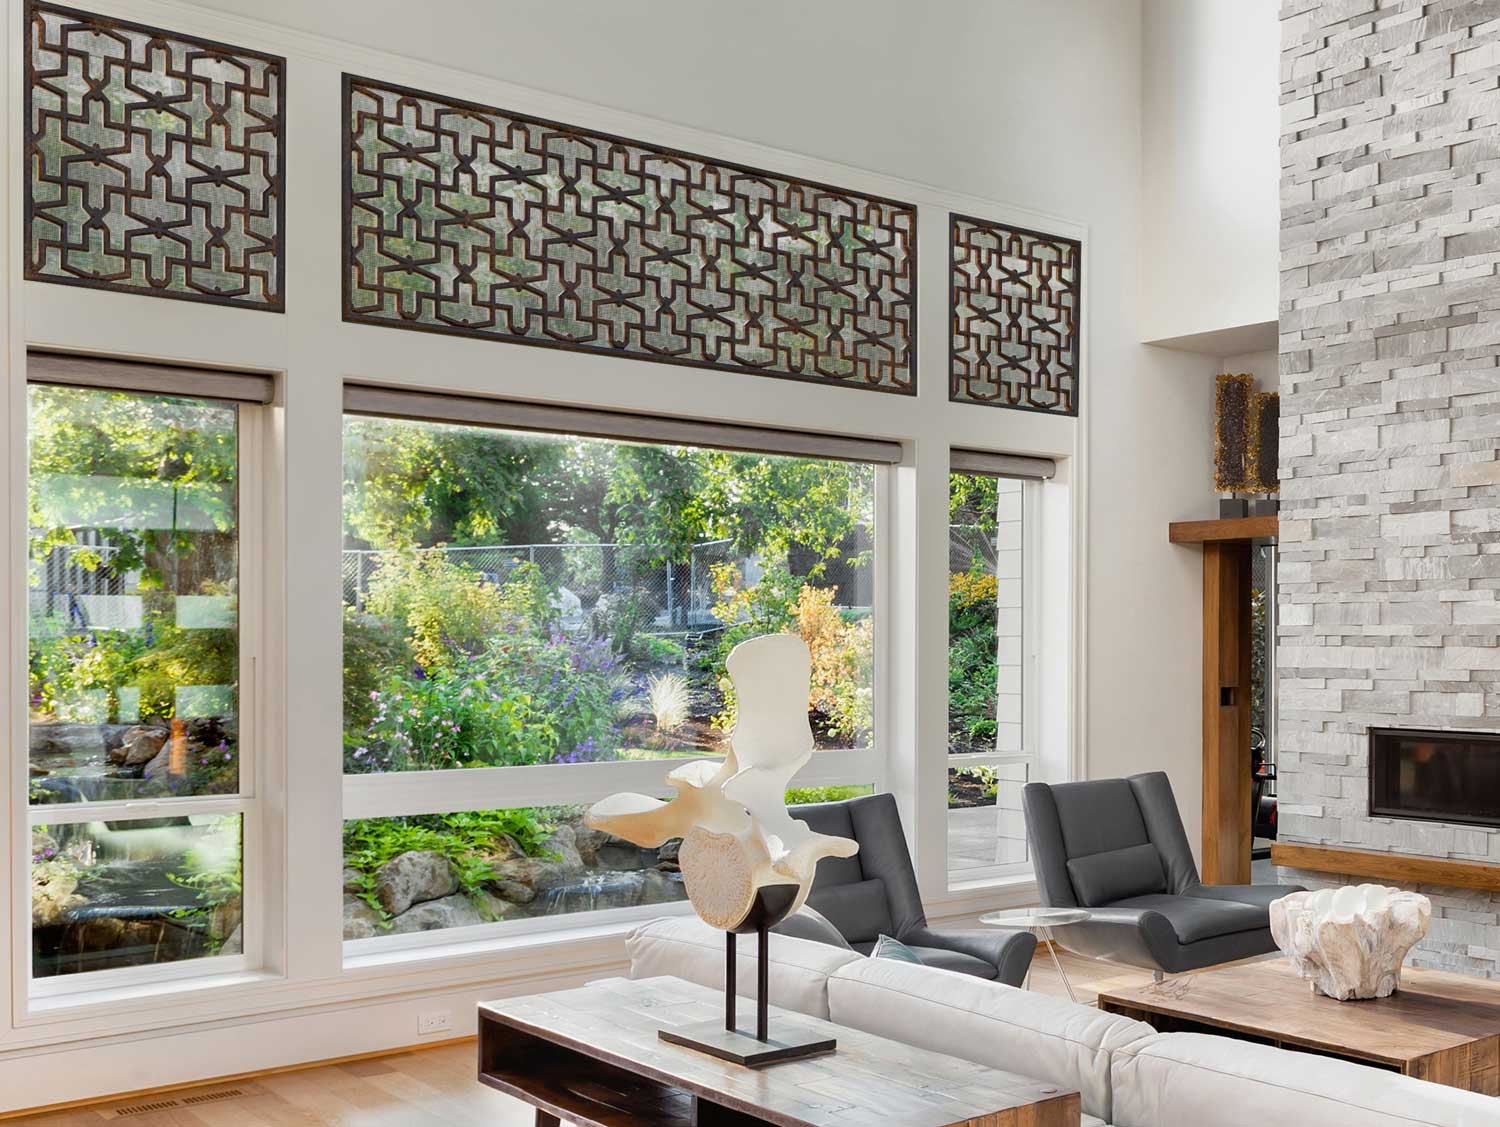 living space with wide window-views into a green garden